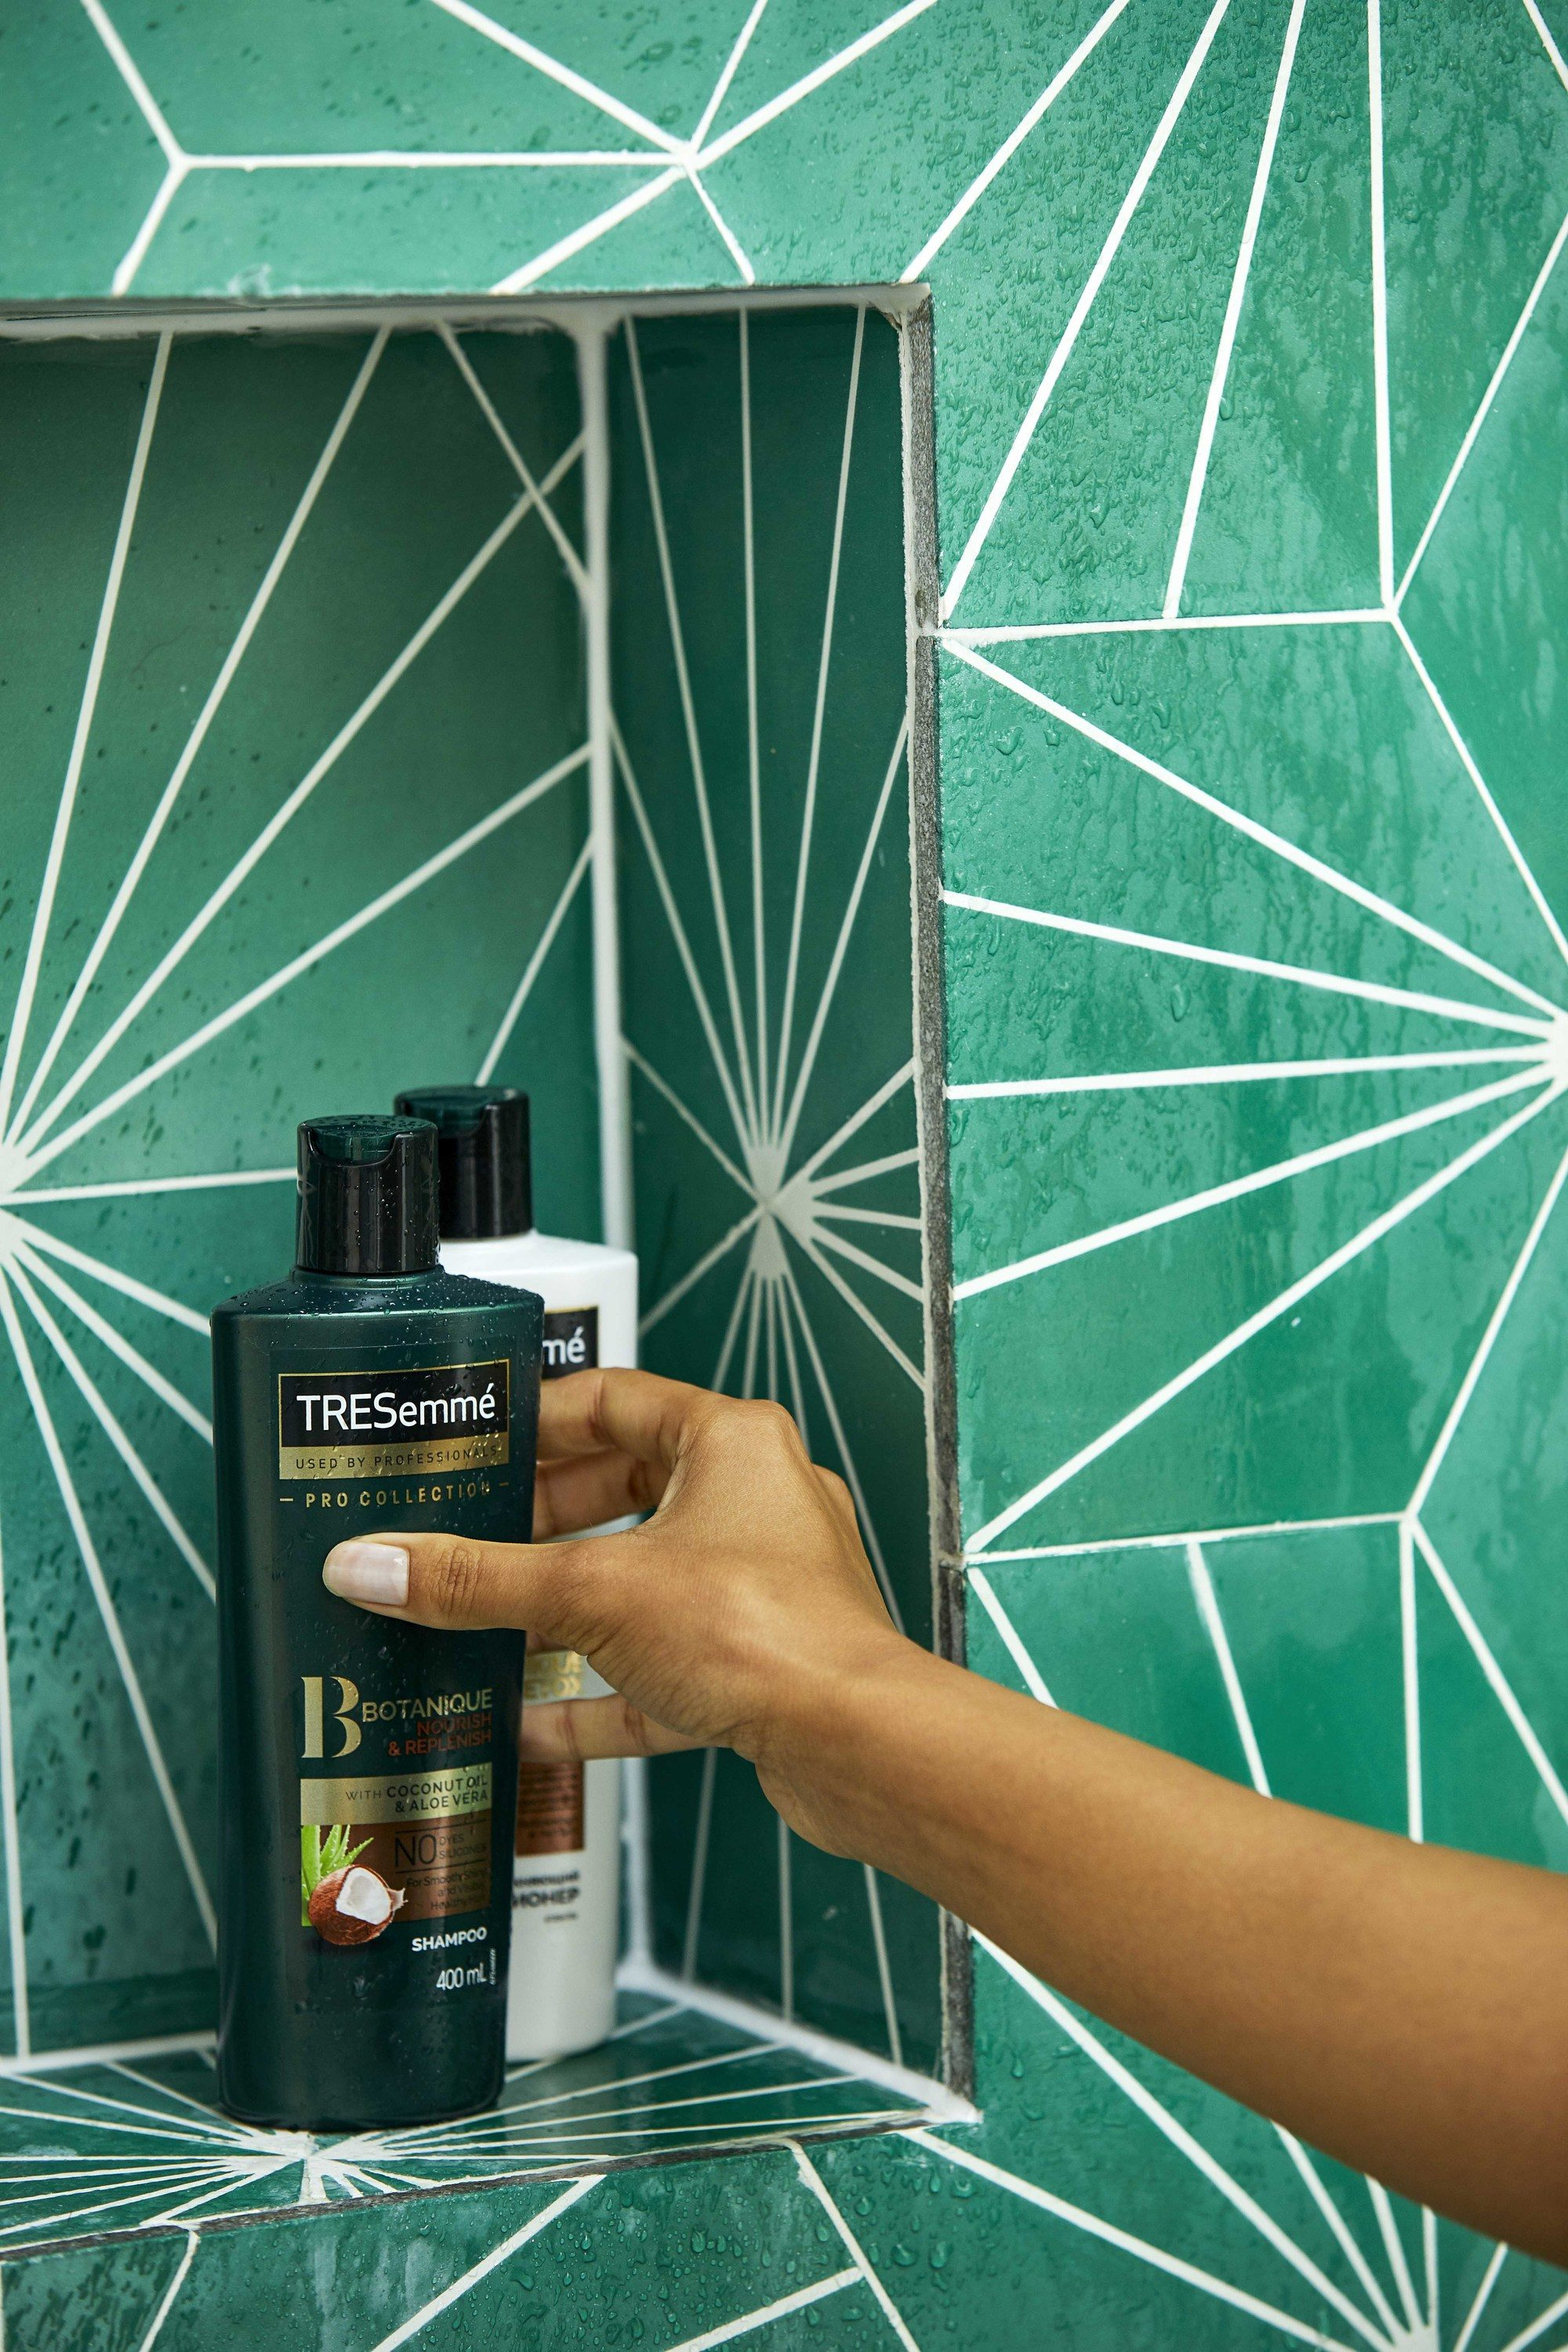 shot of the TRESemme Botanique Nourish & Replenish Shampoo and Conditioner